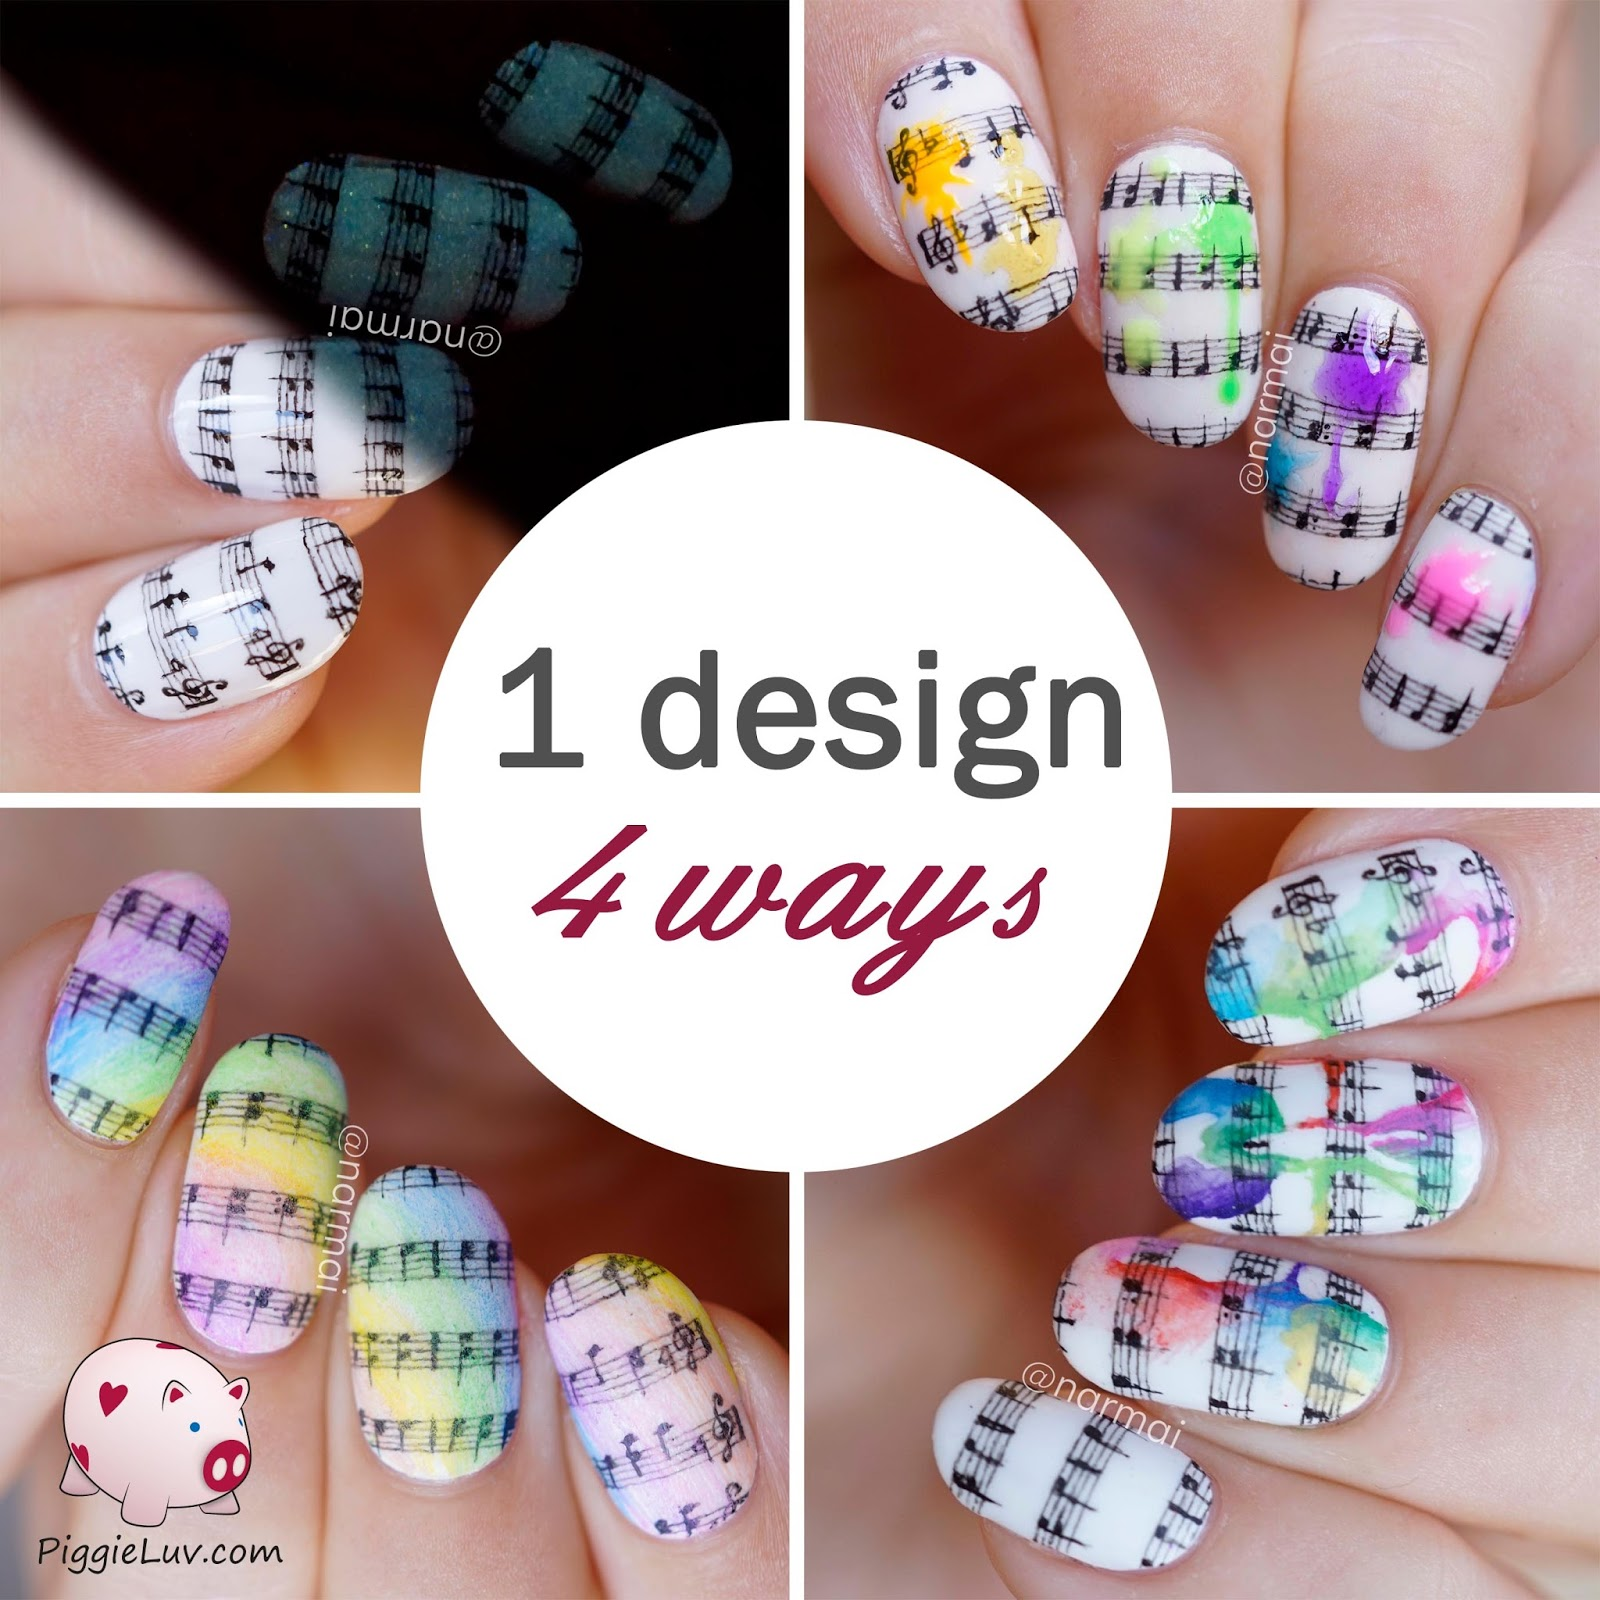 Piggieluv 1 nail art design 4 ways video tutorial i have these four ways to wear one single nail art design and you get to tell me which one you like the most d theres also a video prinsesfo Gallery